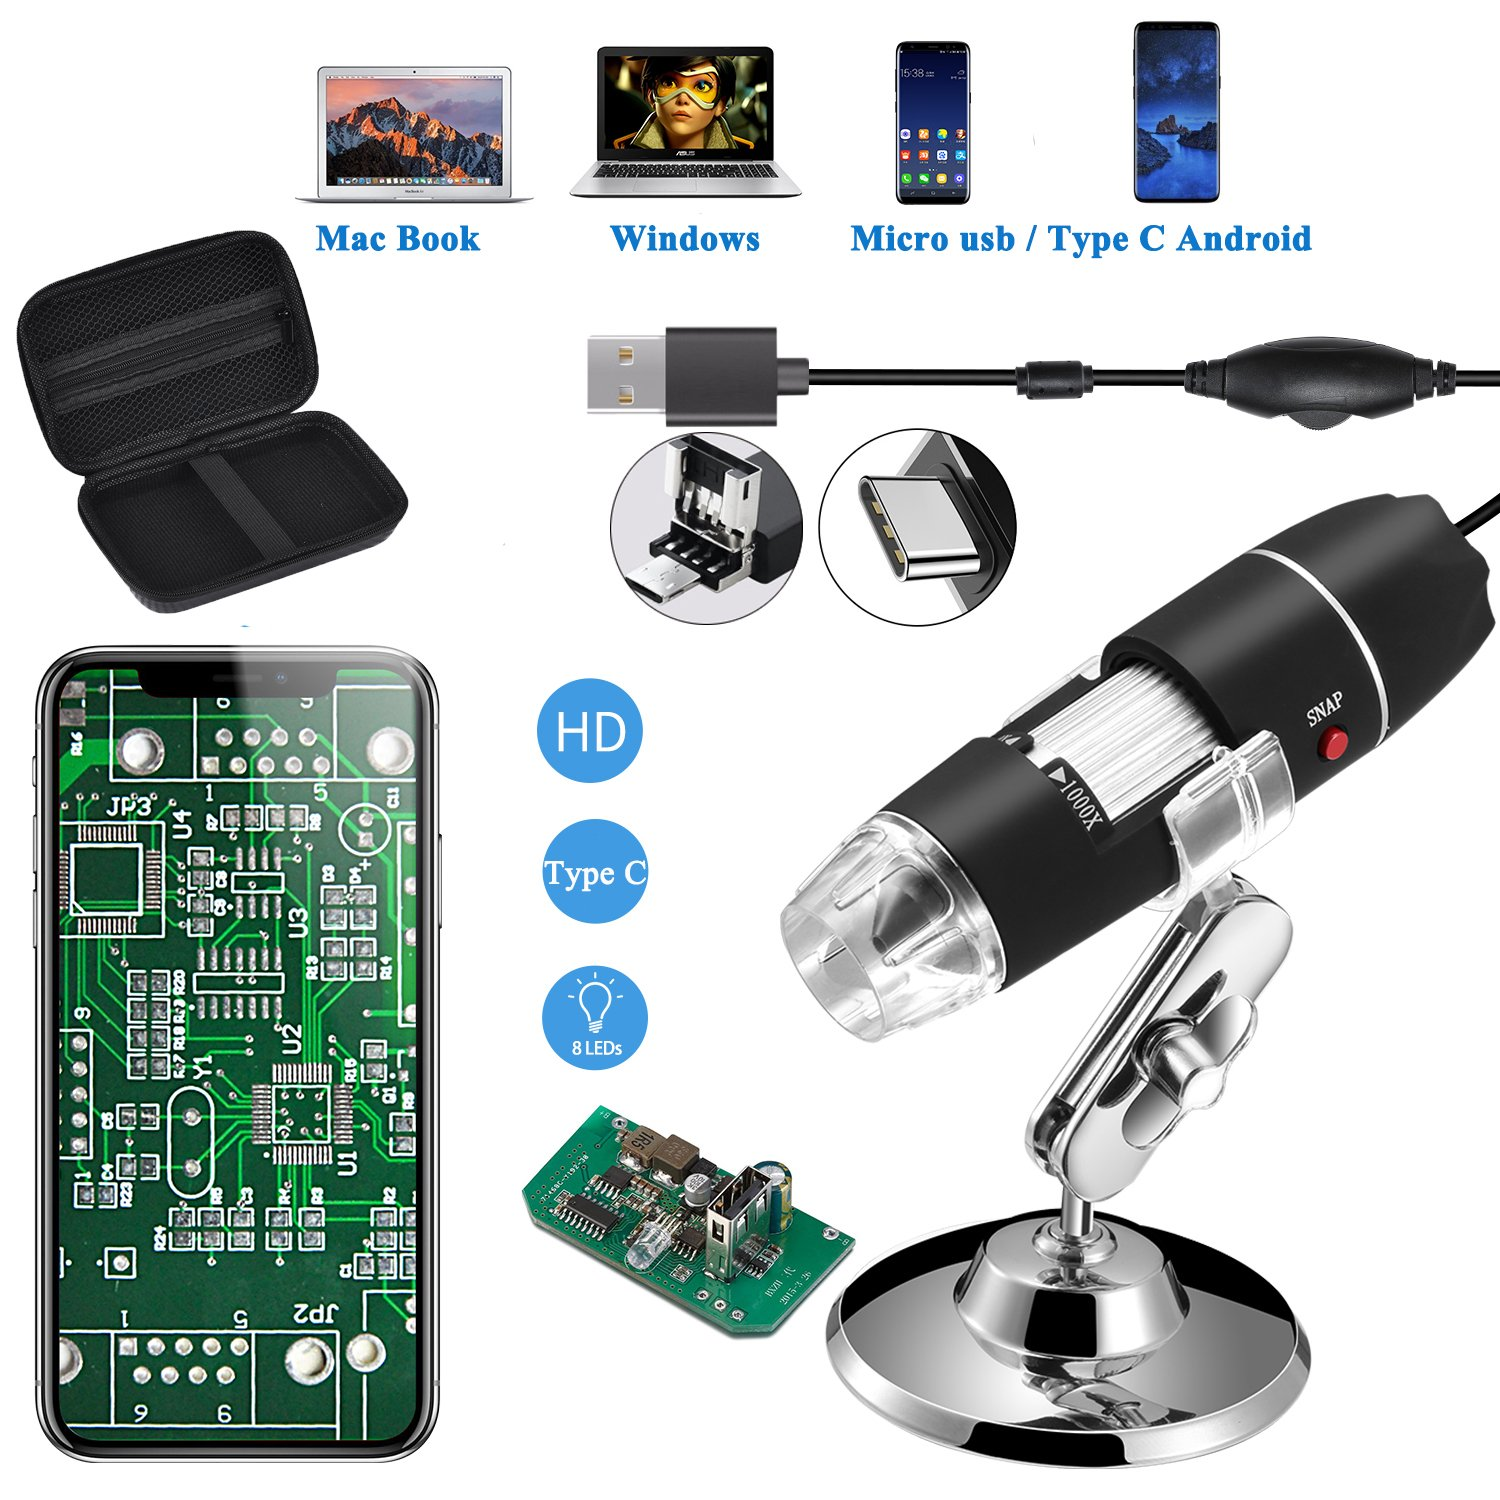 Jiusion Microscopio USB originale 40-1000X con Custodia Portatile, Fotocamera Digitale per Endoscopio Ingrandimento 8 LED Base Metallica per Micro USB Tipo C Android, Windows Mac Linux Chrome Jiusion-Microscope+Bag